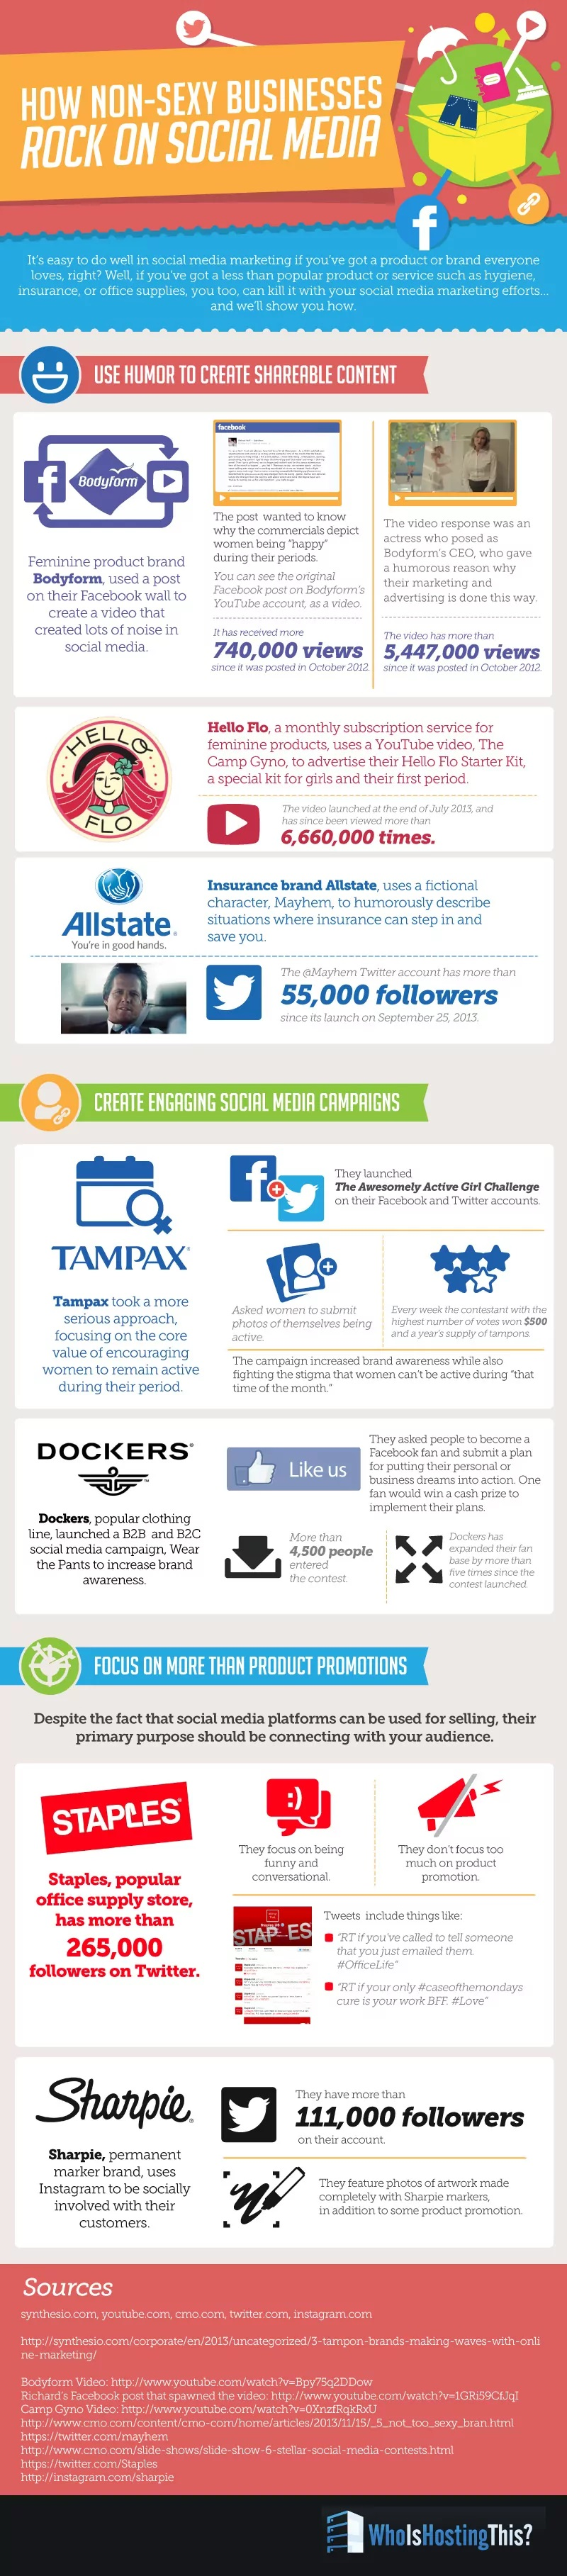 How Non-Sexy Businesses Rock on Social Media #infographic #Business #Social Media #Non-Sexy Business #Non-Sexy